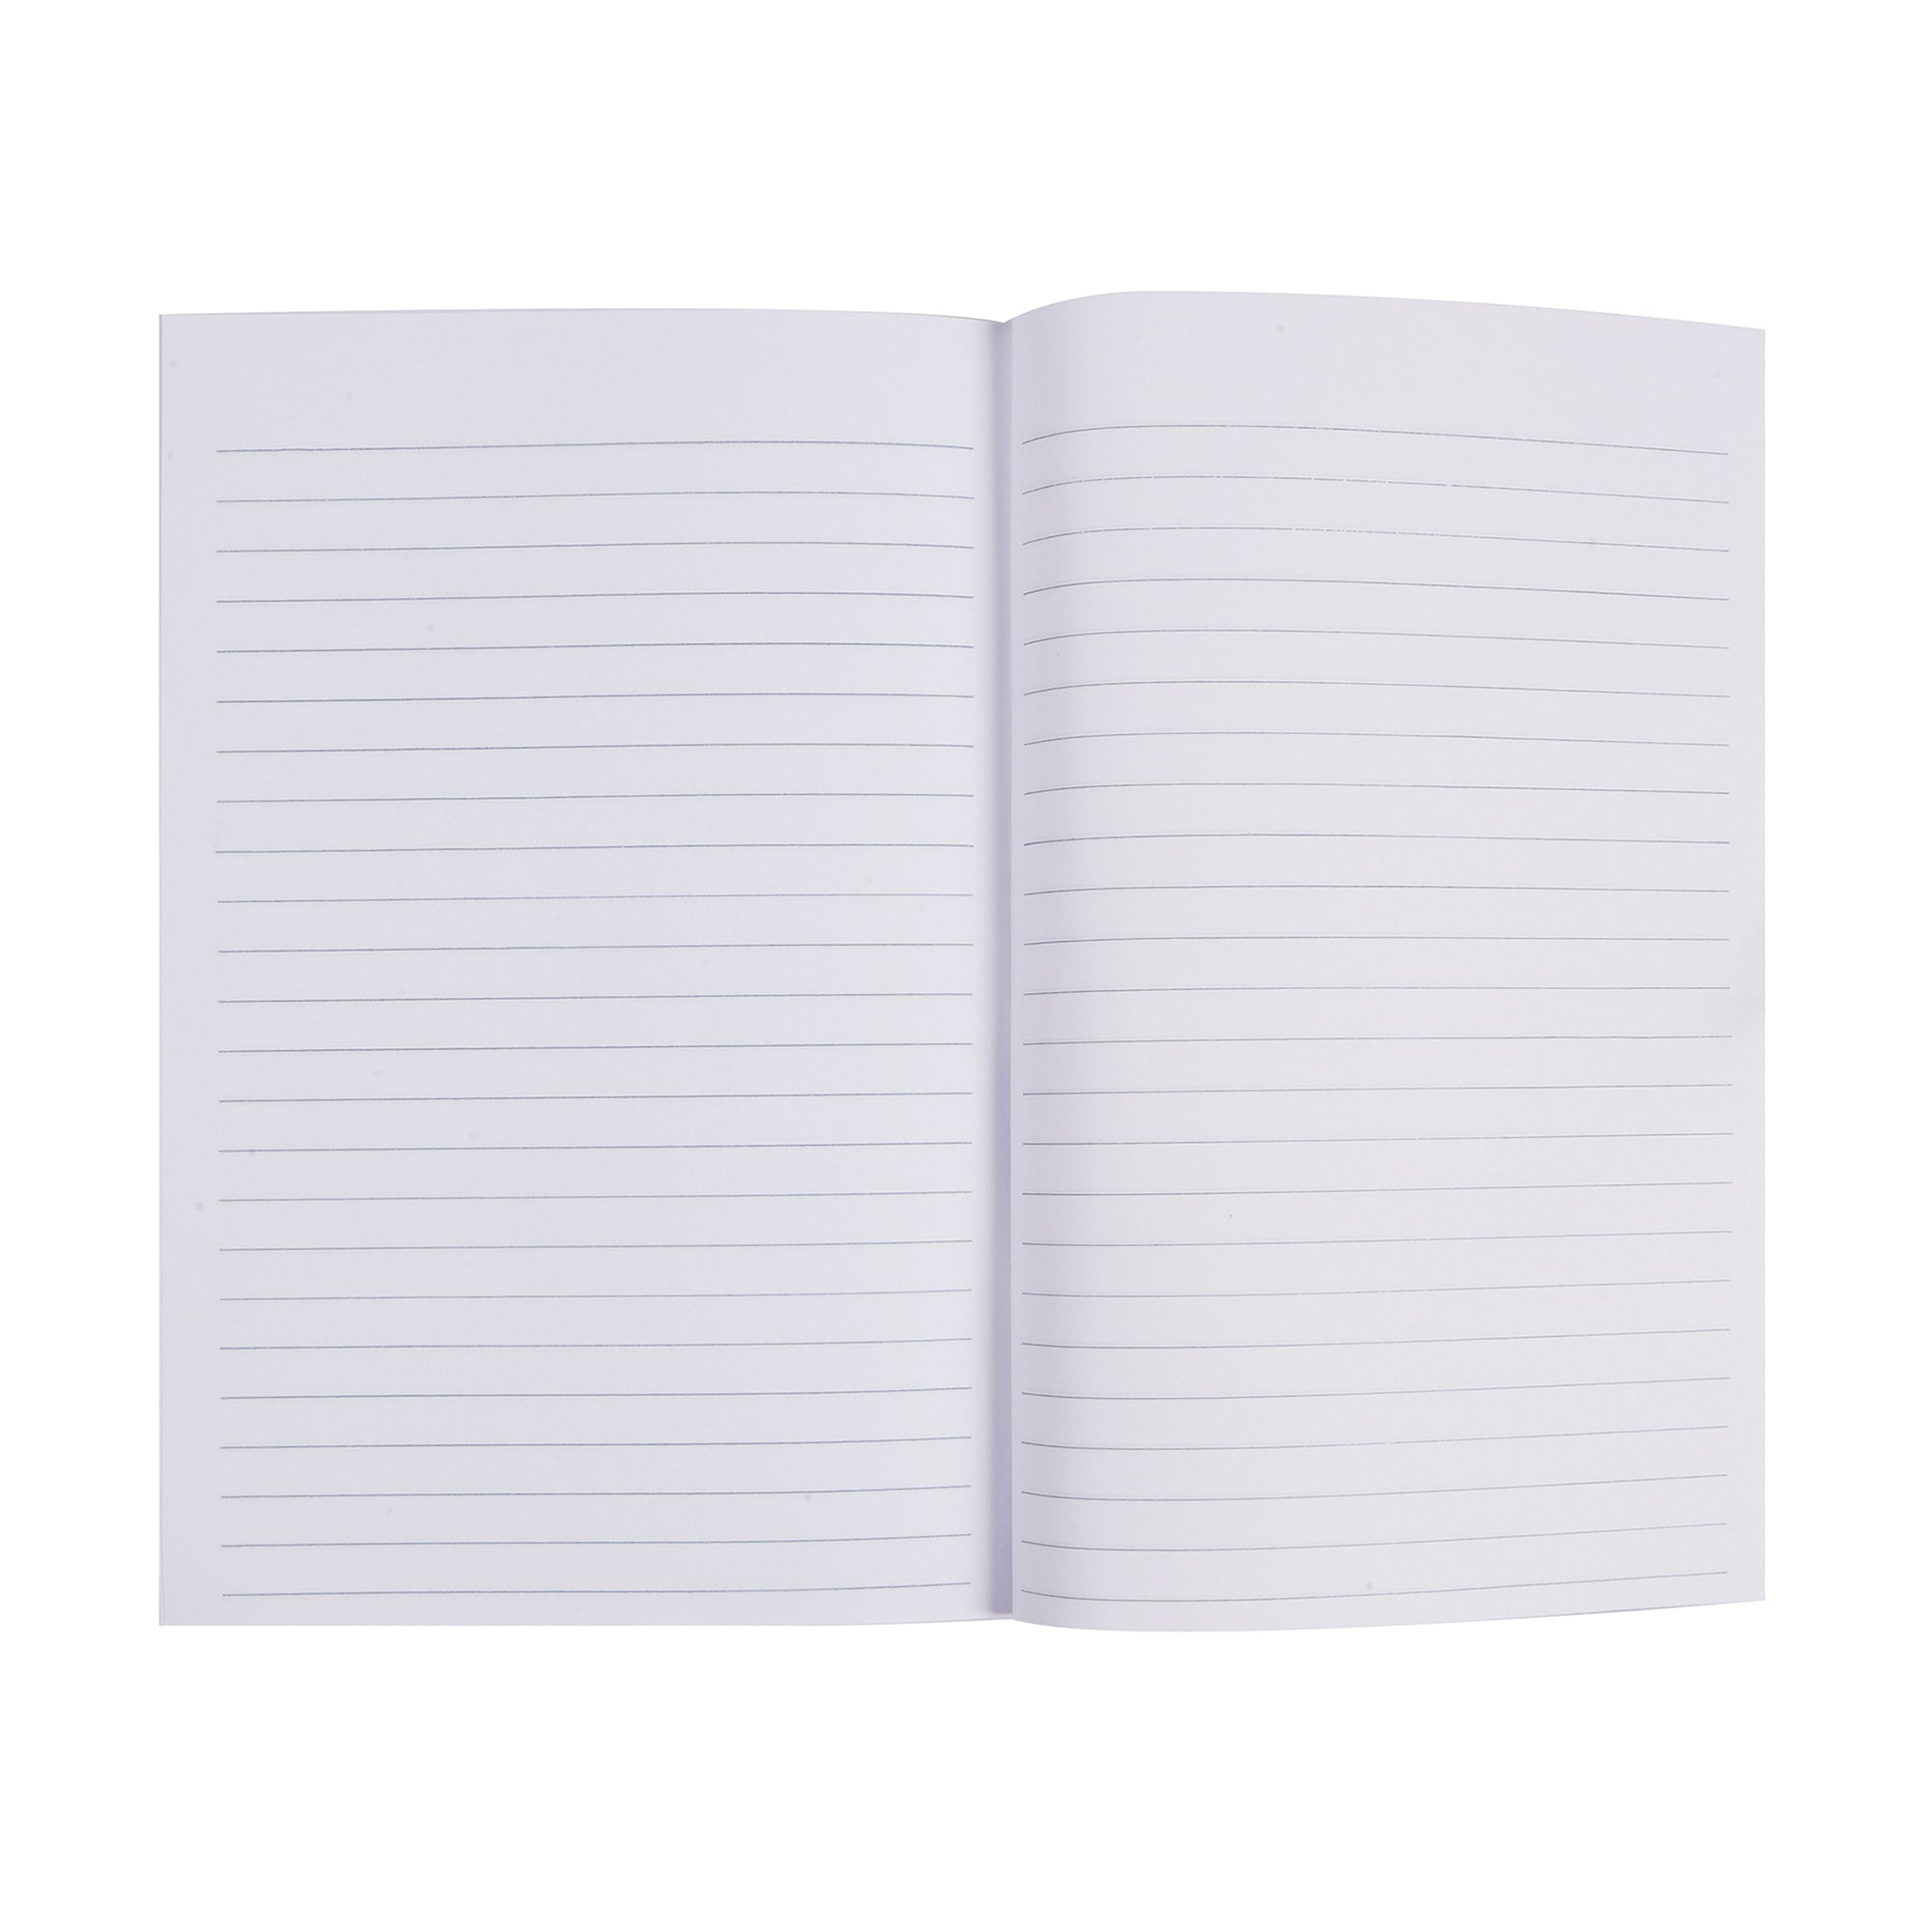 Punny Potty Mouth Notebooks (Pack Of 2 - 120 Pages)